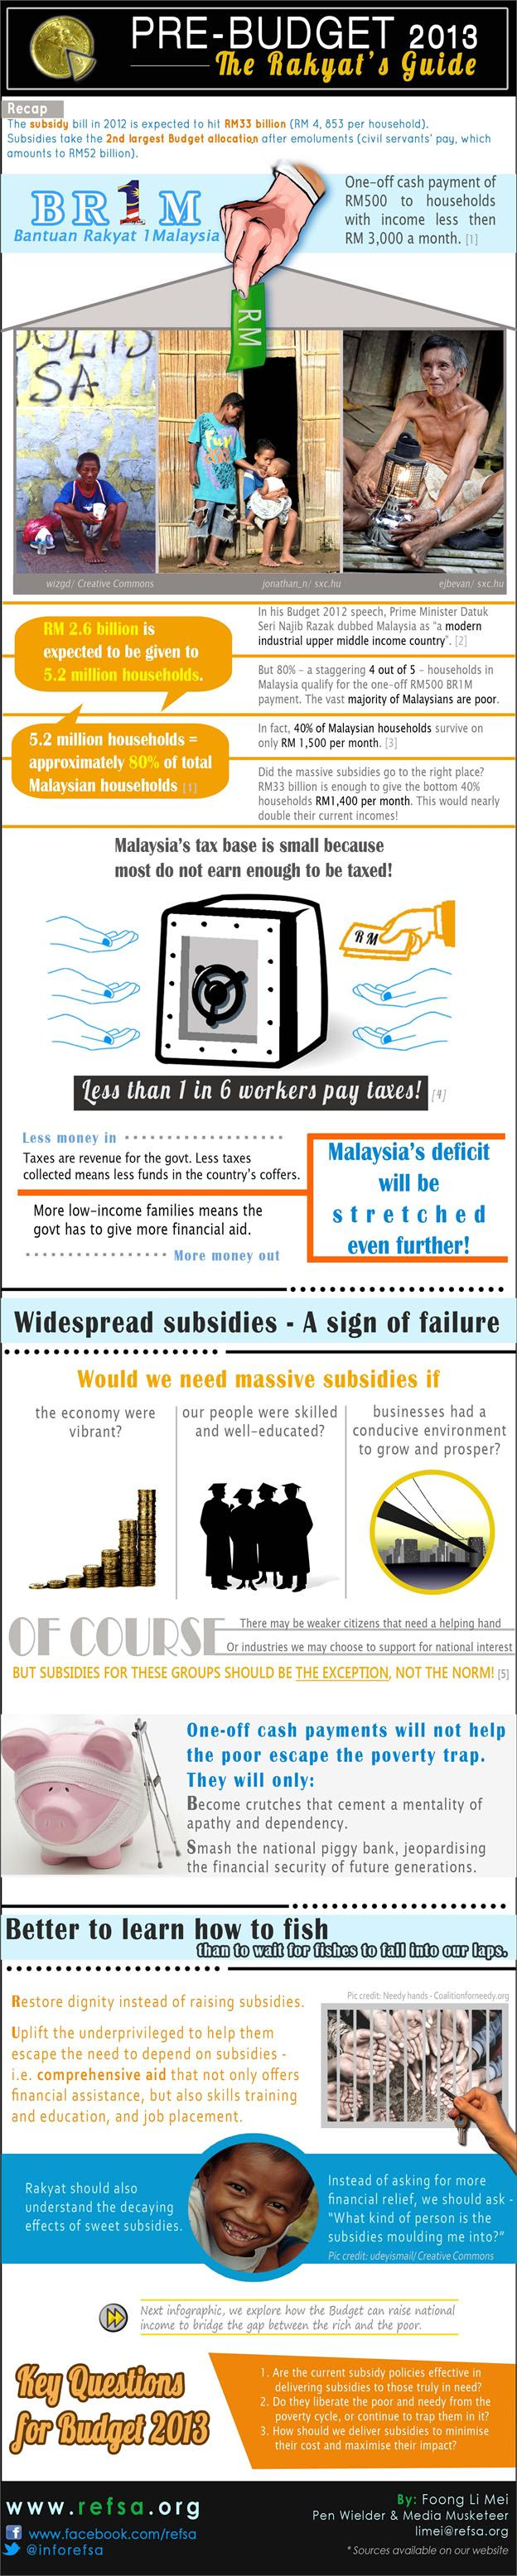 Pre-Budget 2013 Guide Part 5 - infographic